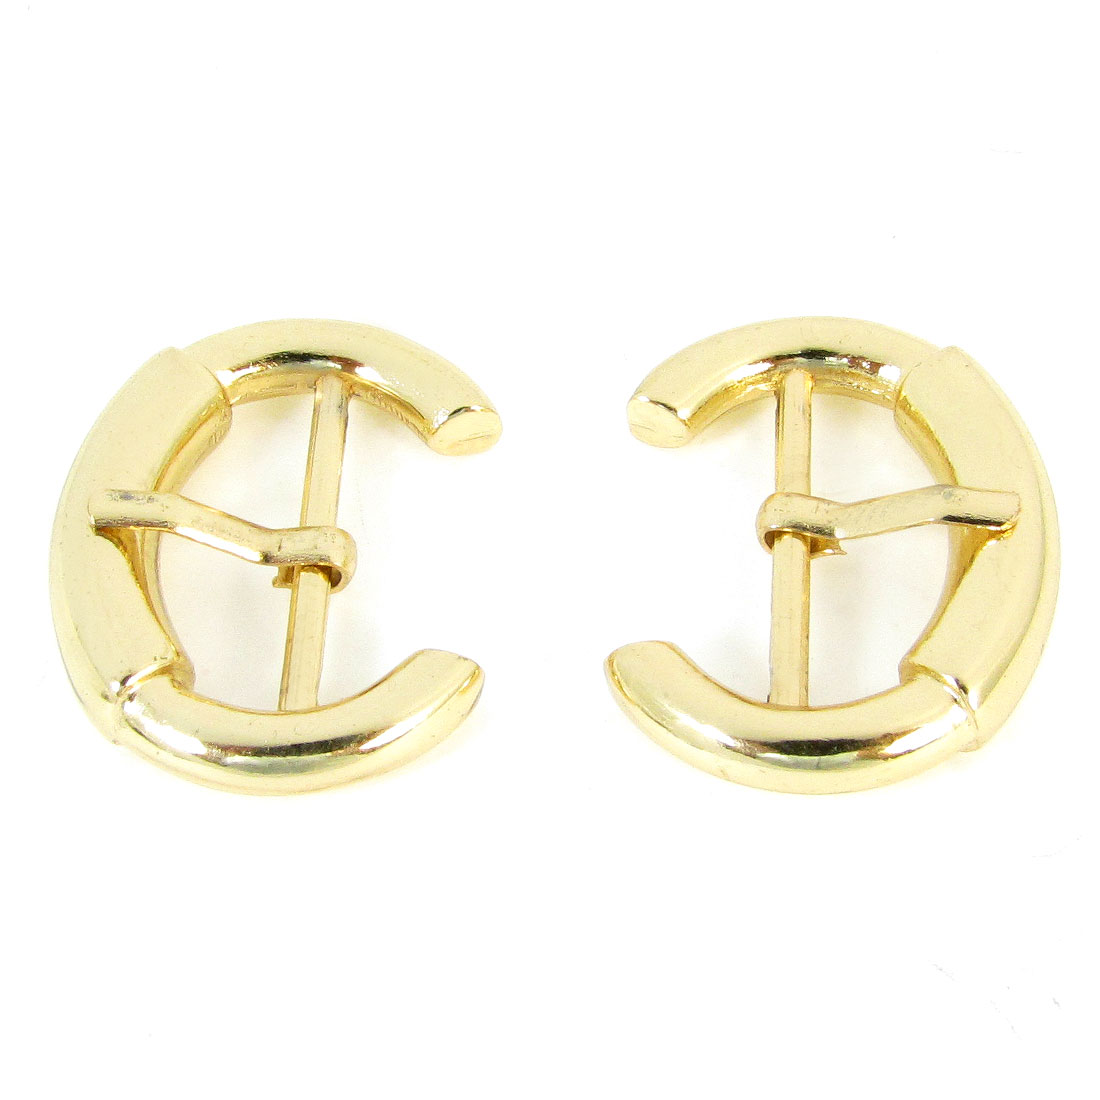 2 PCS Gold Tone Metal Strap Wearing C Shape Pin Buckles for Packsack Shoes